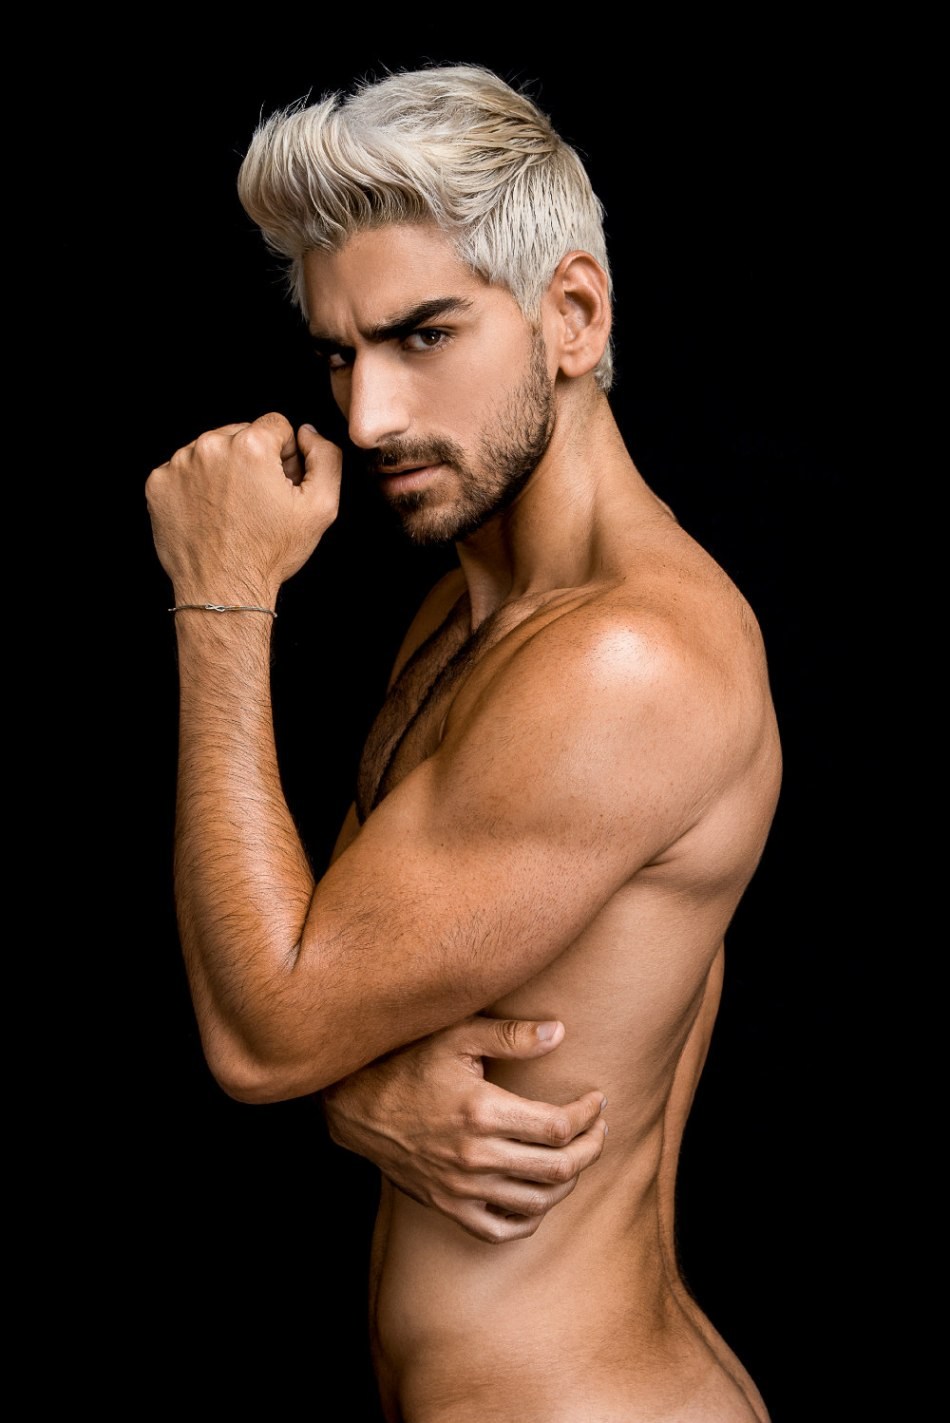 Presenting raw shots by Fritz Yap featuring platinum hair new face Andres Leonardi from BD Talent Management. Creative Director by Kai Jankovic.